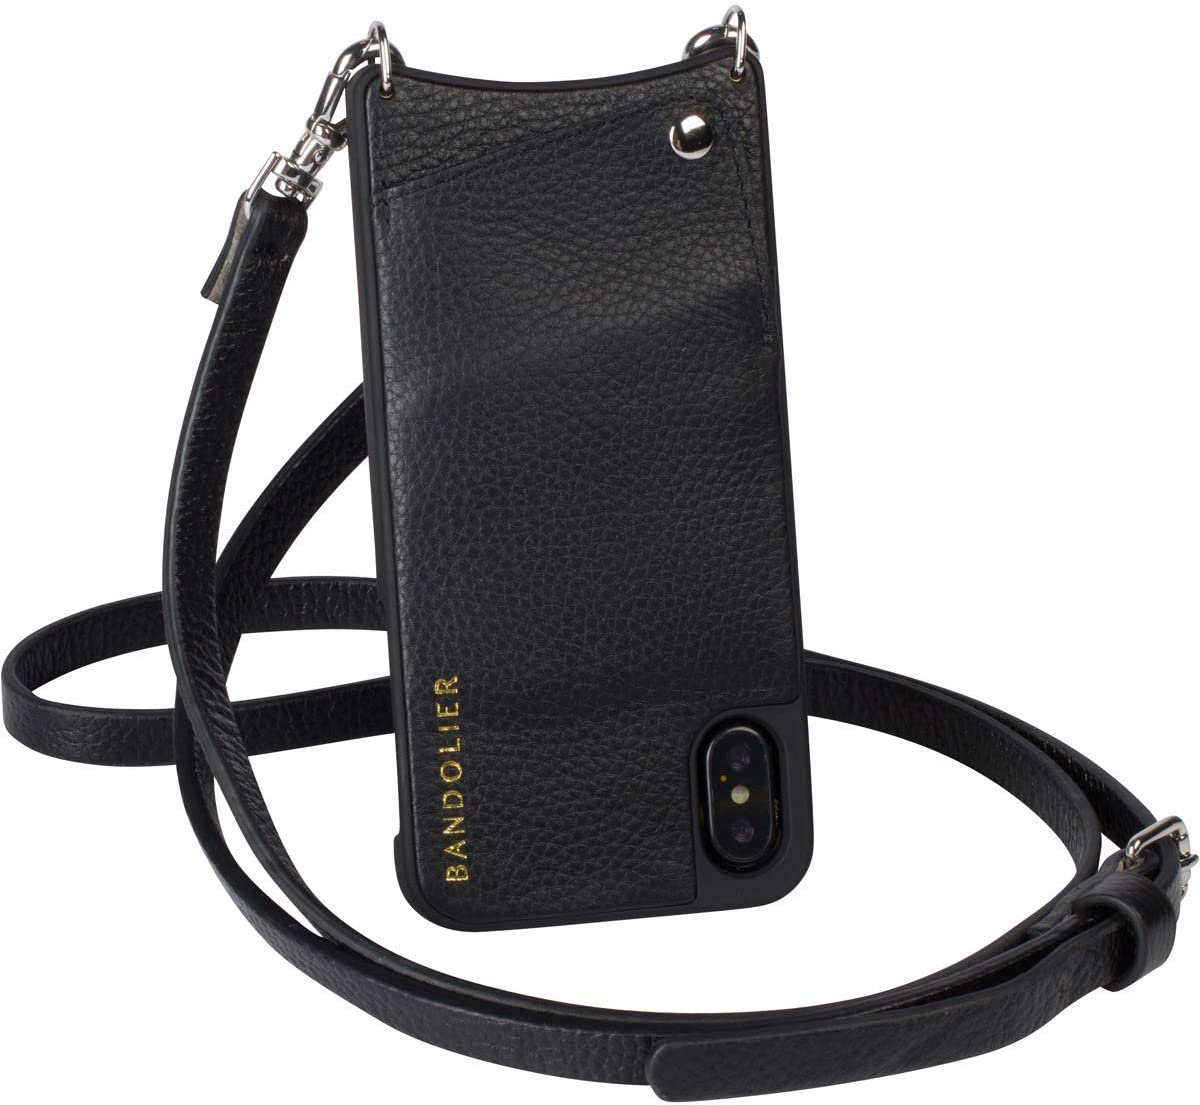 Bandolier [Emma] Crossbody Phone Case and Wallet - Compatible with iPhone 8 Plus, 7 Plus, 6 Plus, 6s Plus - Black Pebble Leather with Silver Detail (Renewed)